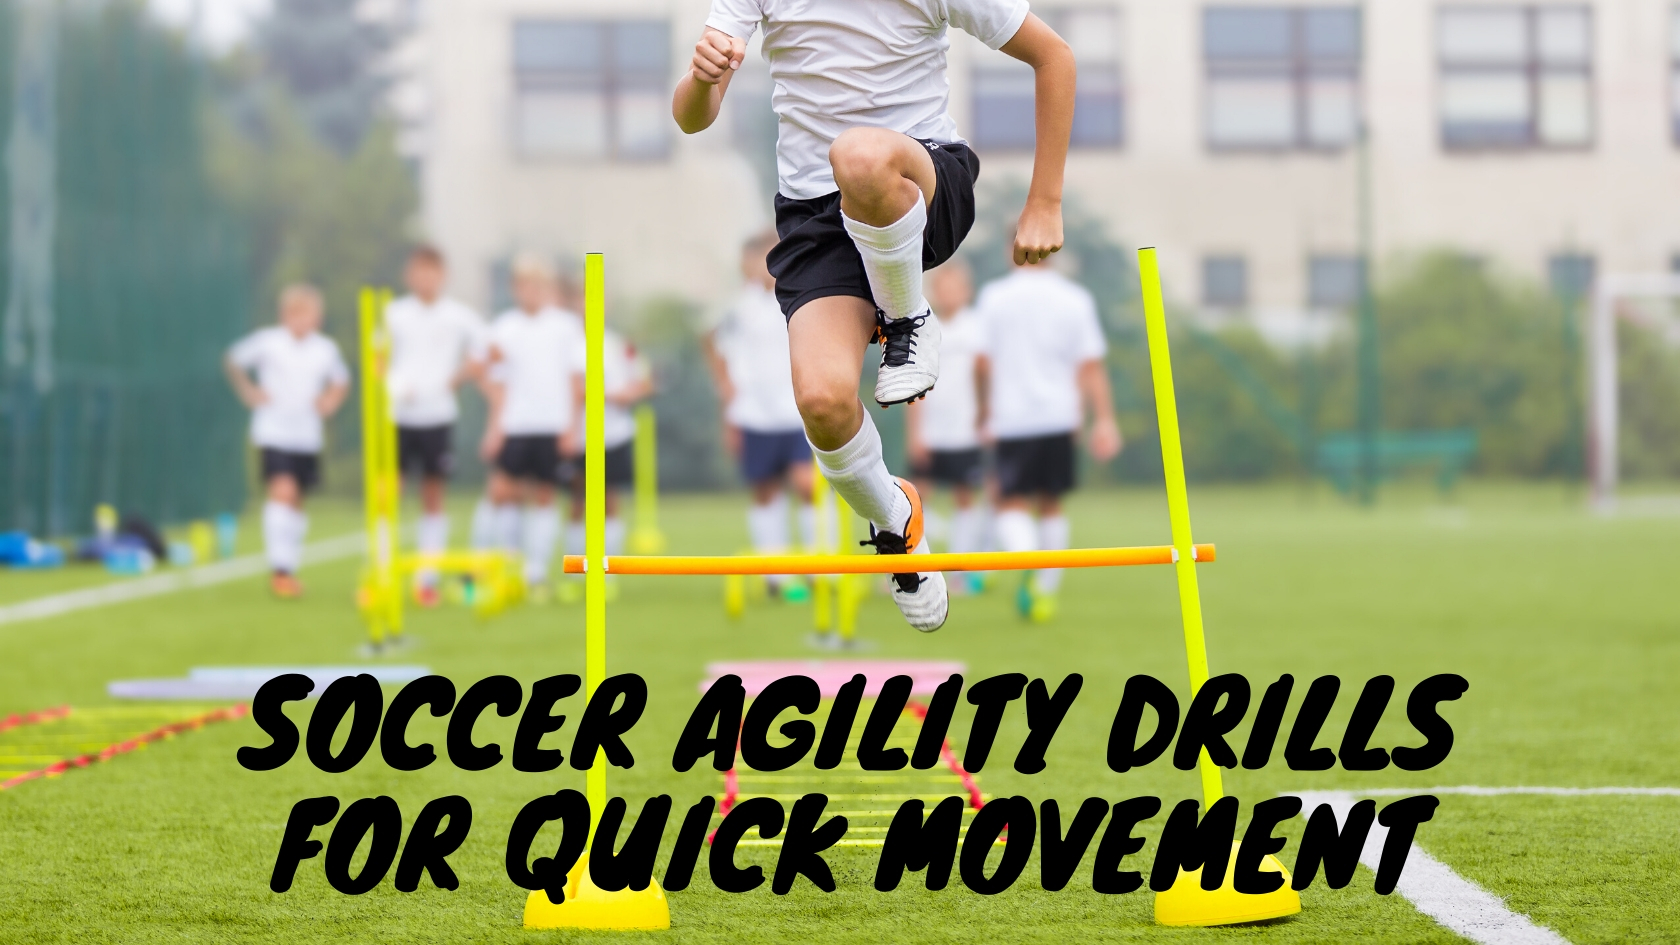 Soccer Agility Drills for Quick Movement